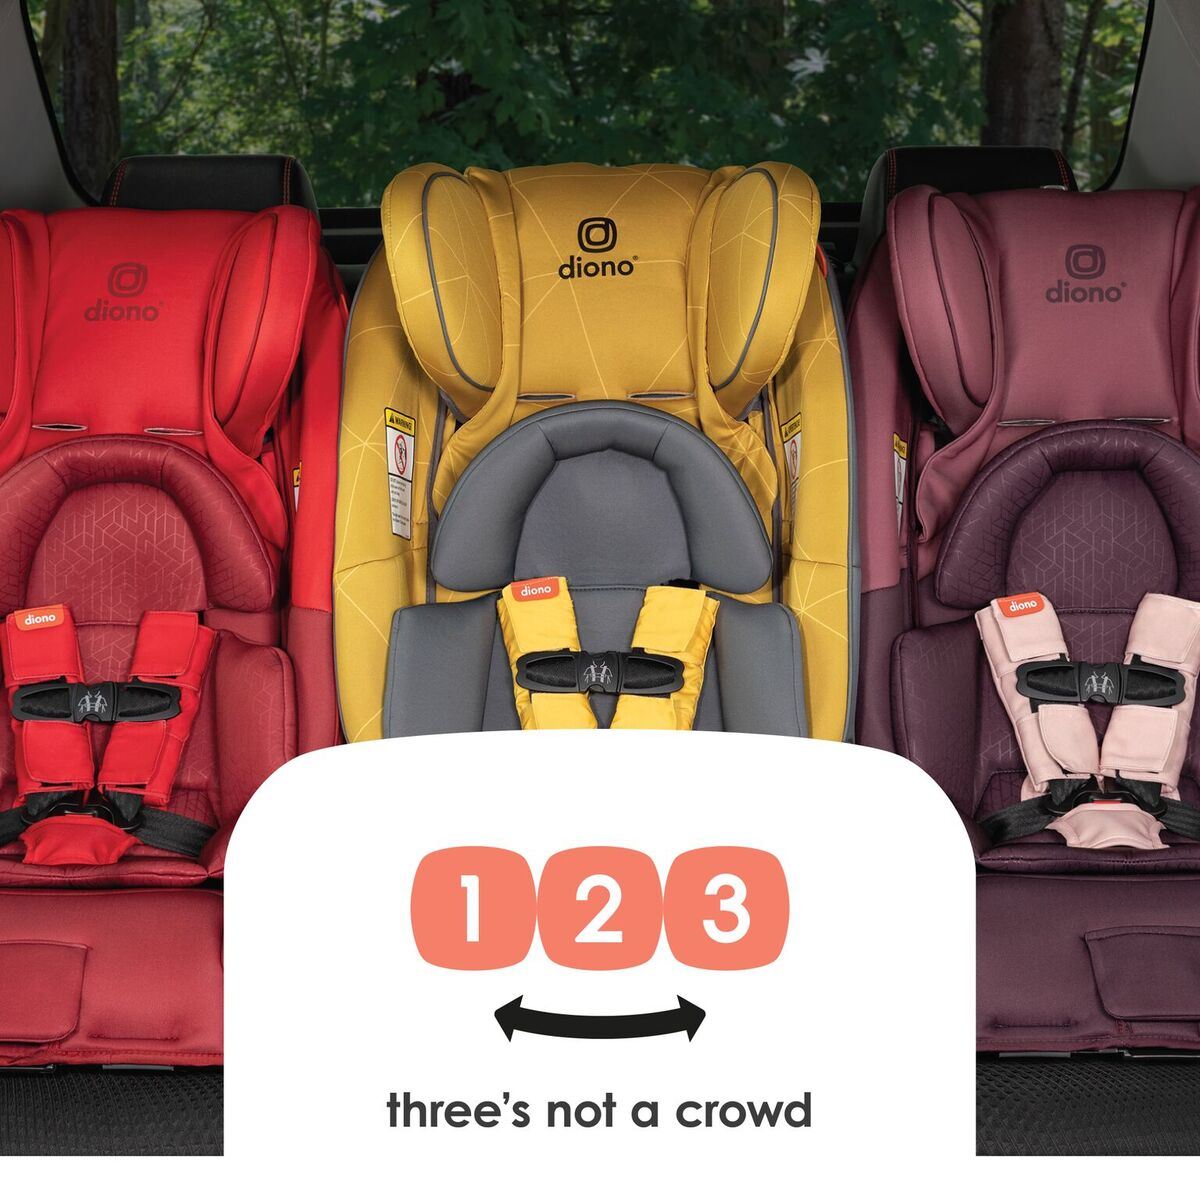 Diono Radian 3 RXT All-in-One Convertible Booster Child Safety Car Seat Yellow